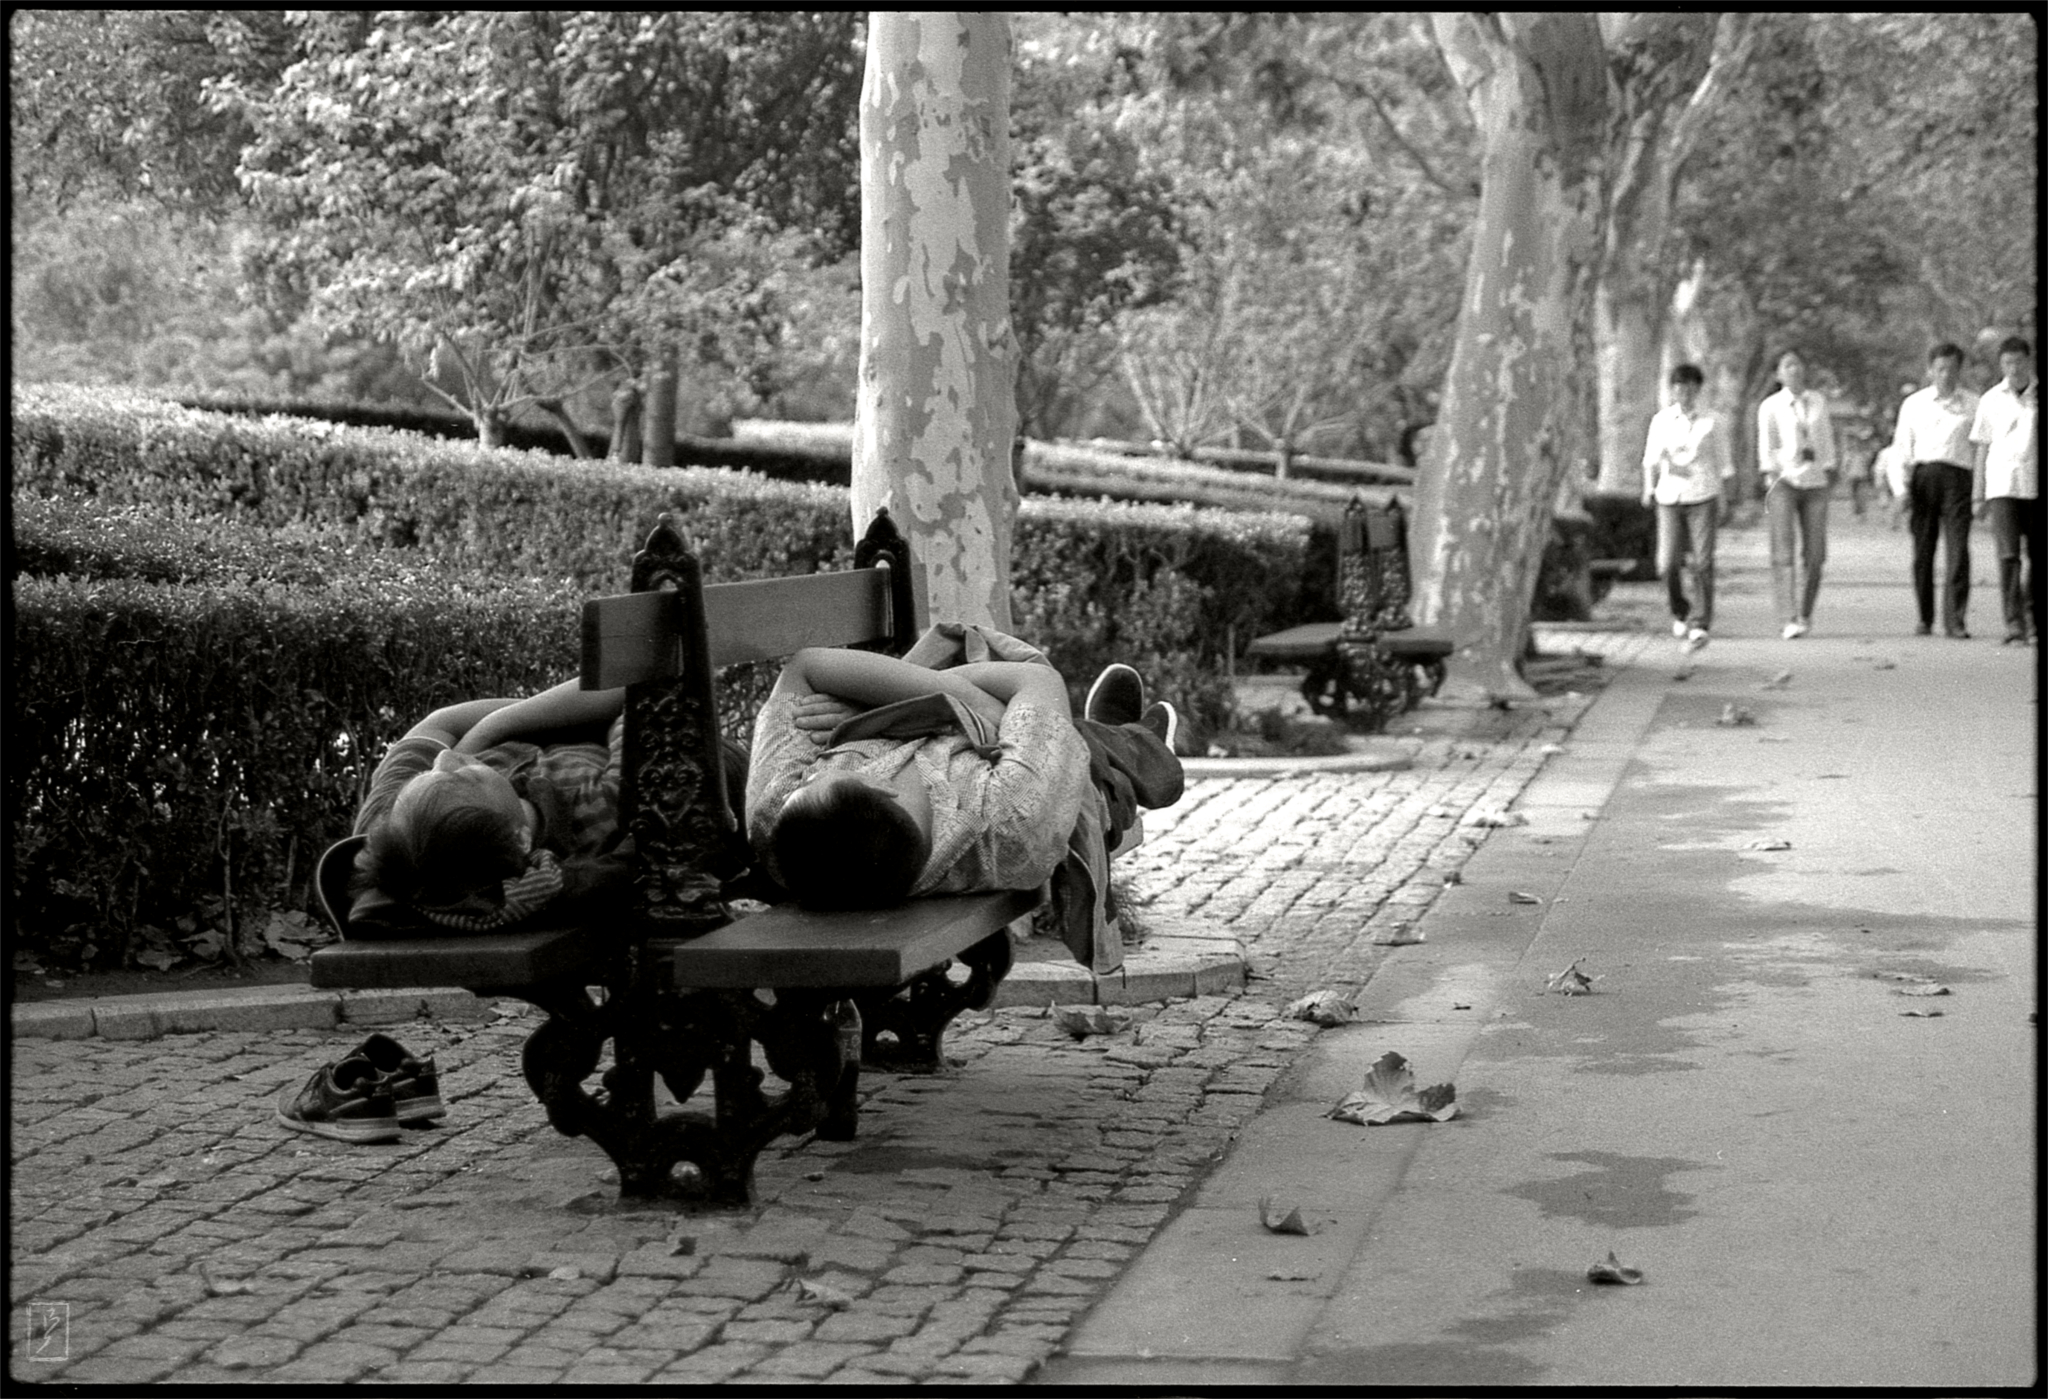 Fuxing park (复兴公园): Lunchtime nap on a bench.